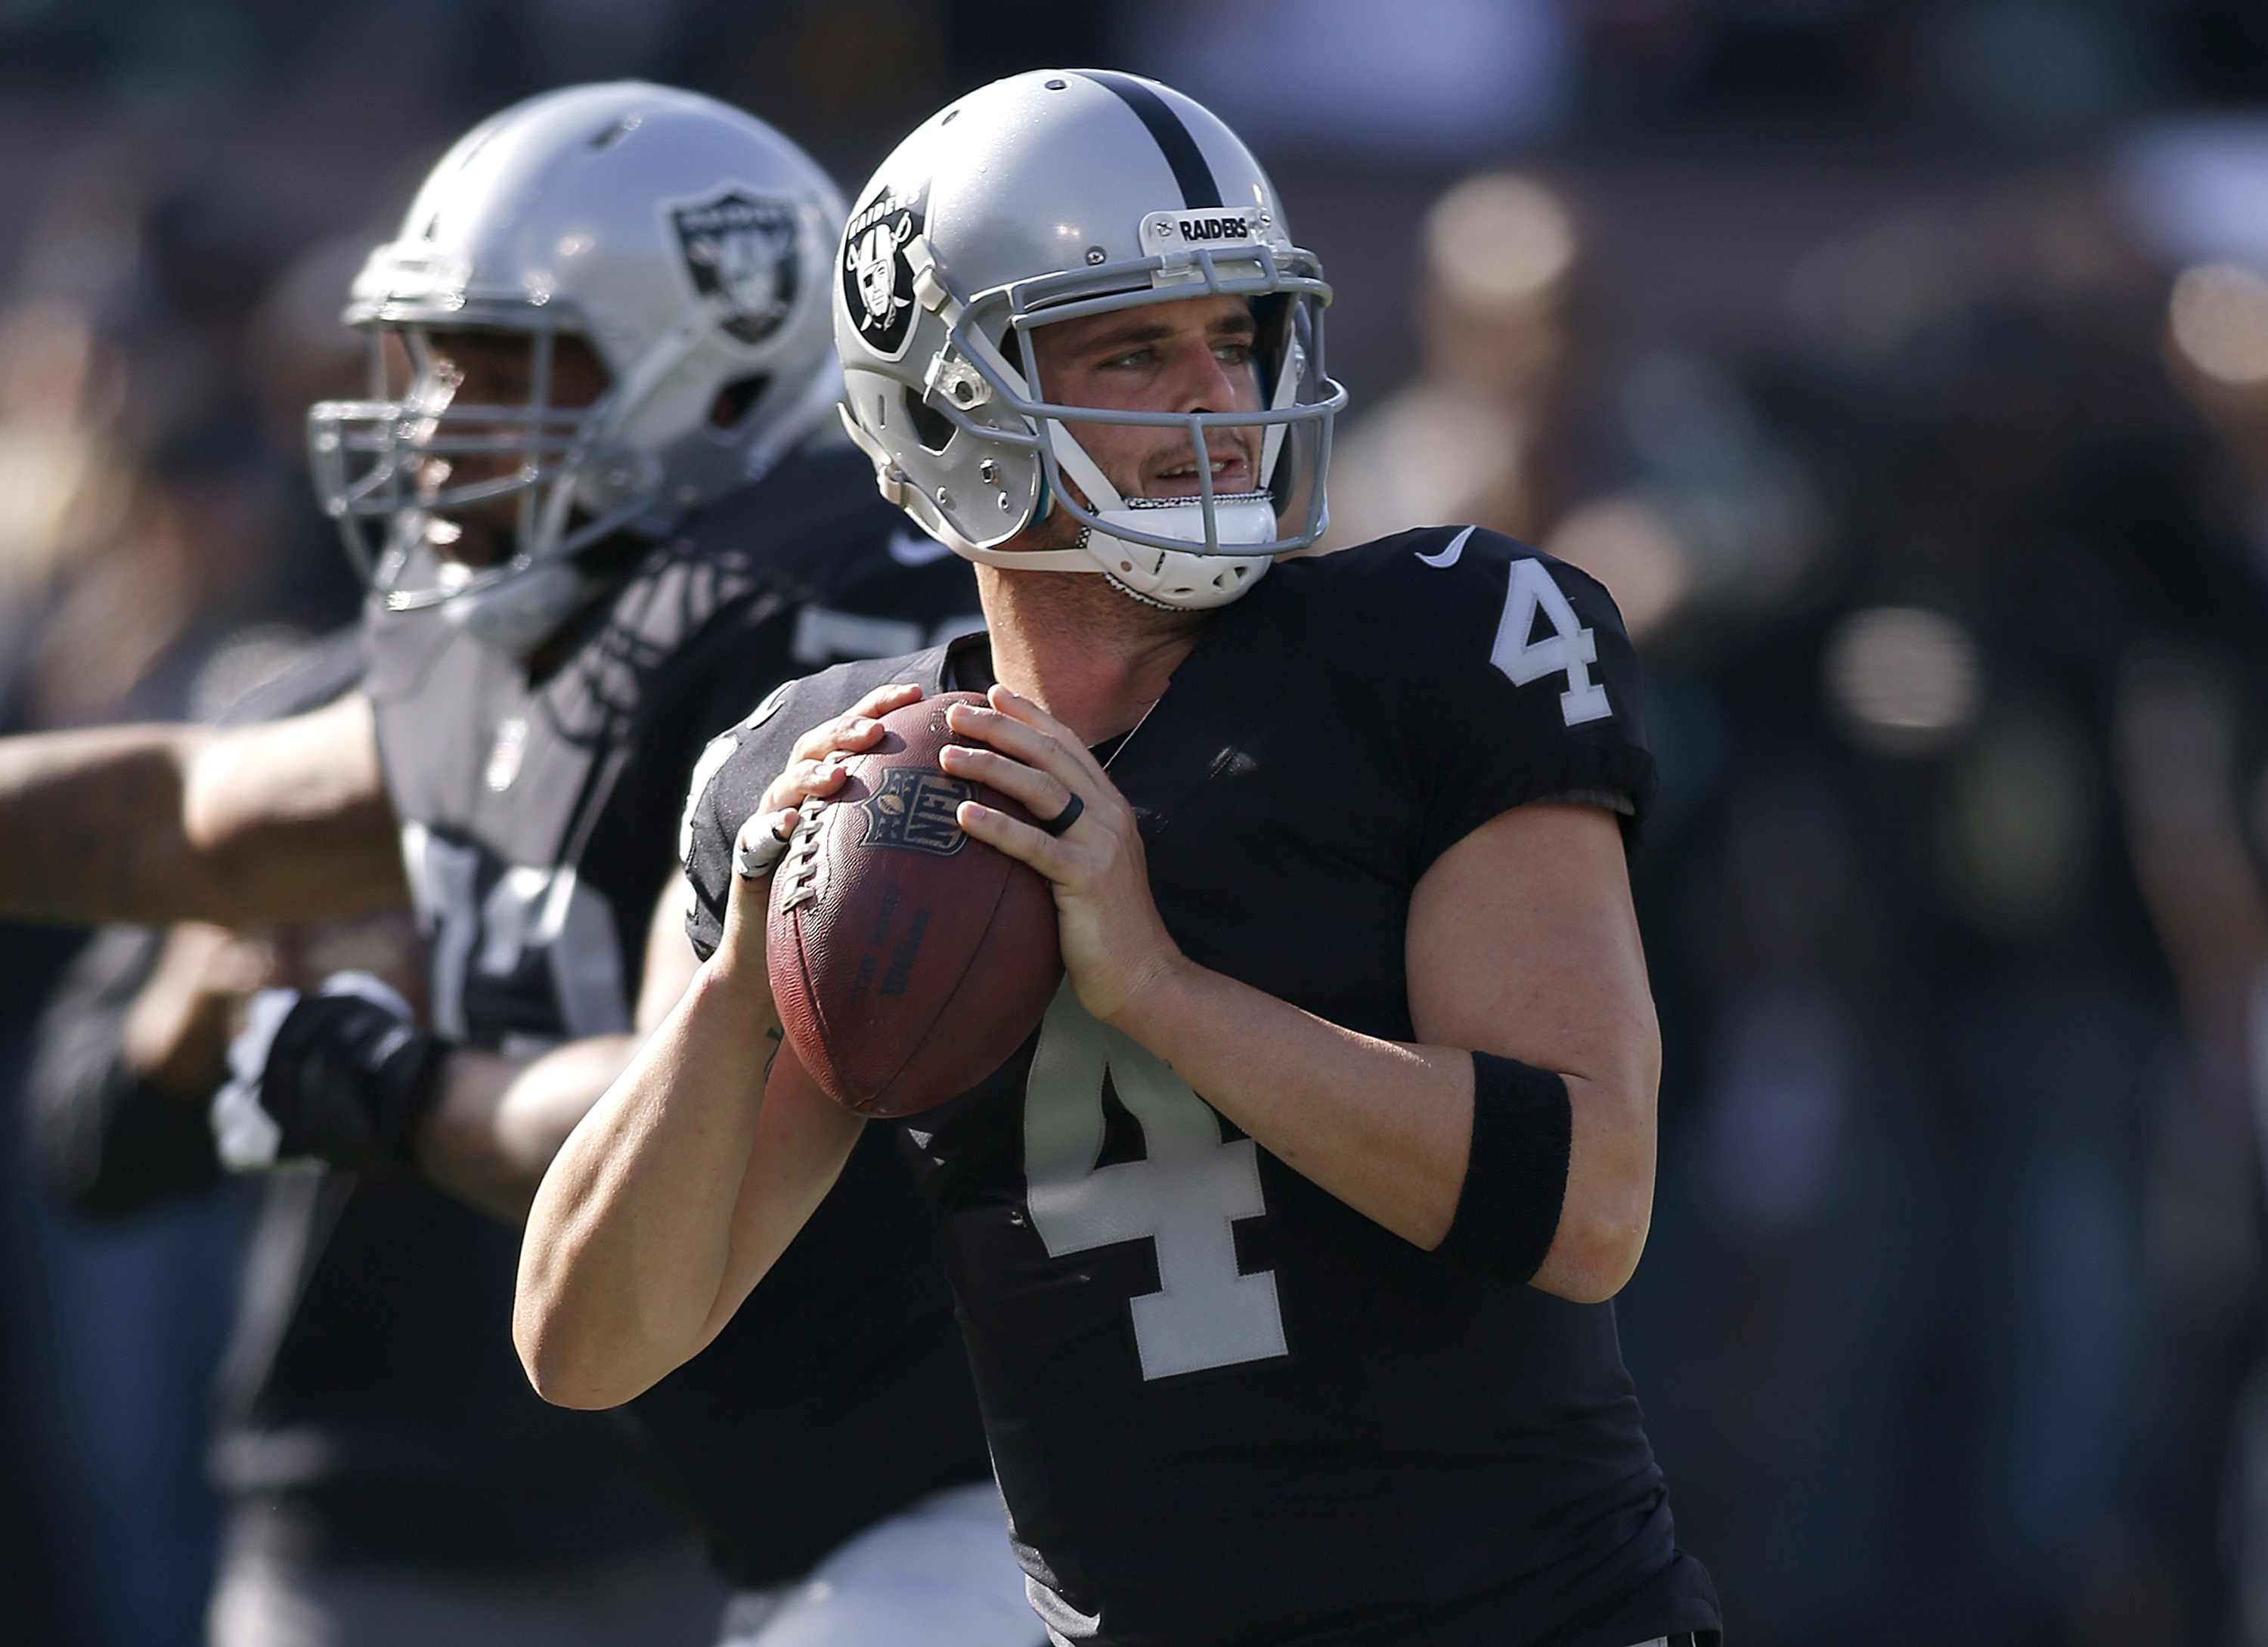 FILE - In this Sunday, Dec. 4, 2016 file photo, Oakland Raiders quarterback Derek Carr (4) warms up before an NFL football game against the Buffalo Bills in Oakland, Calif. This has not been the most watchable of NFL seasons, although the action and enter